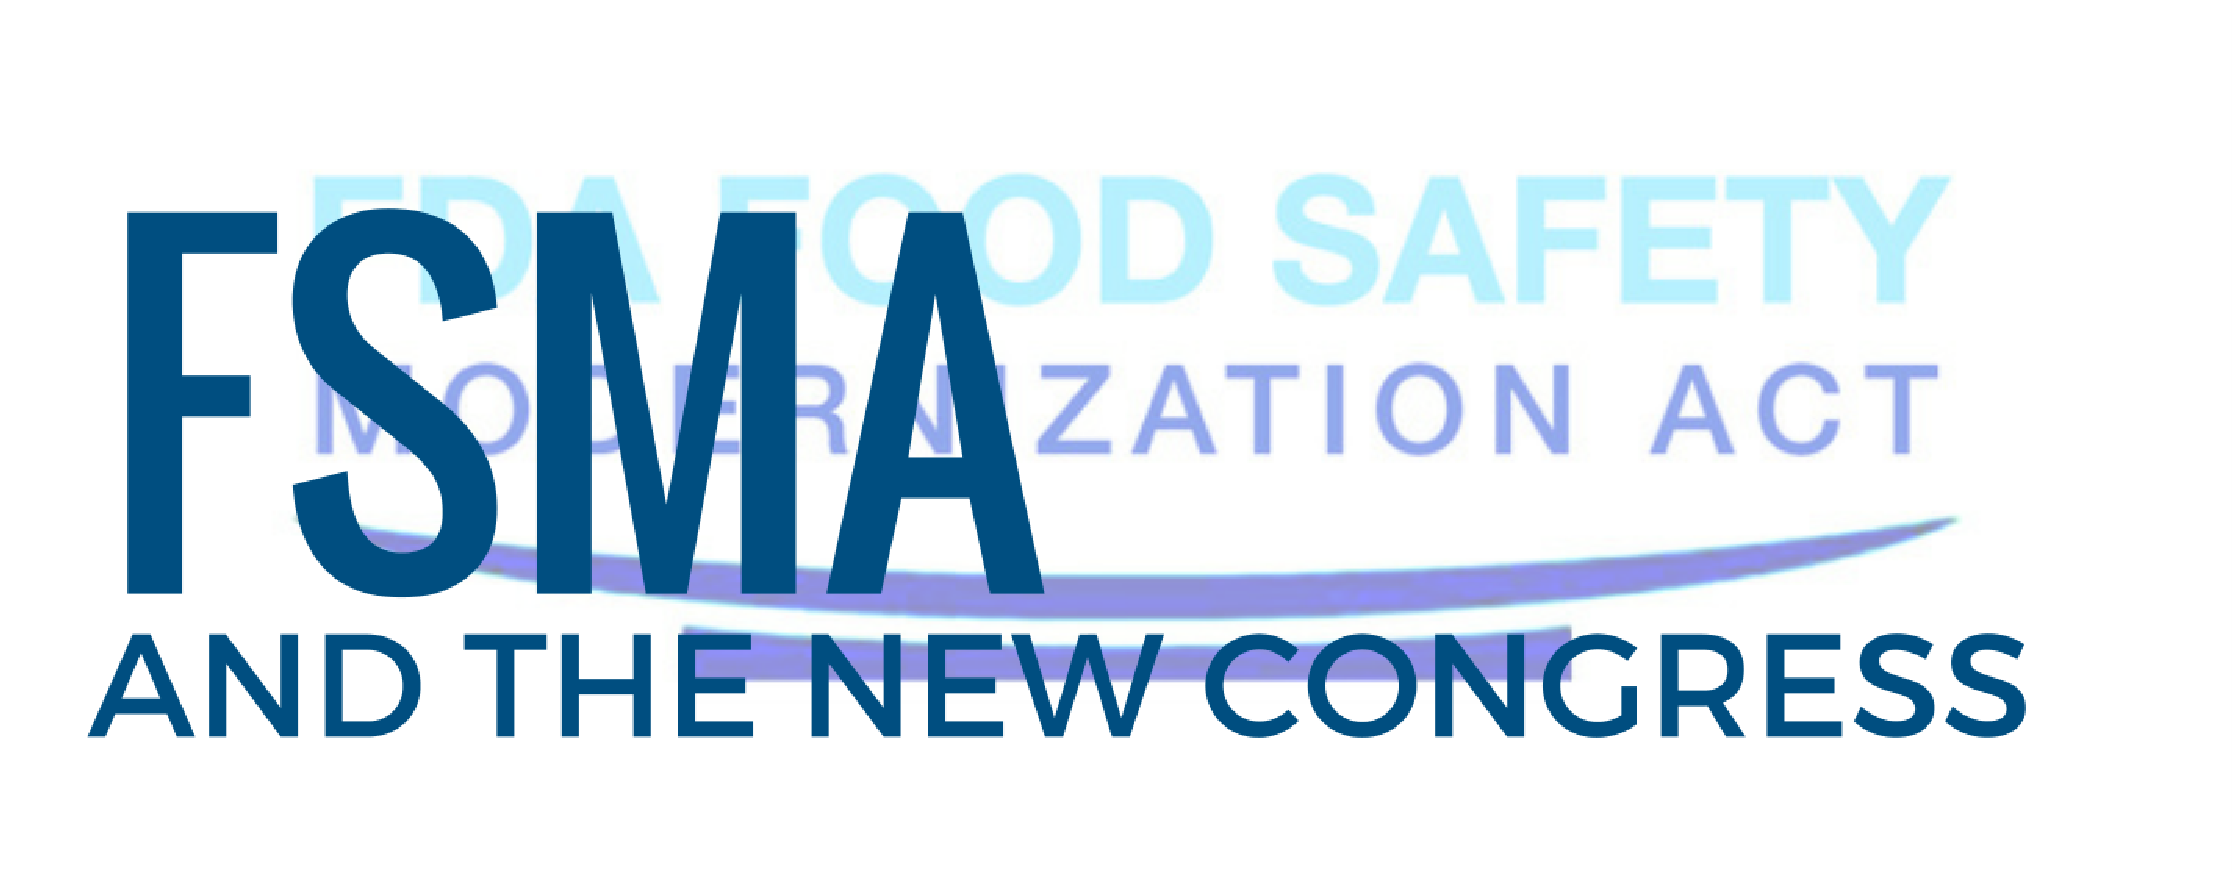 FSMA and the New Congress